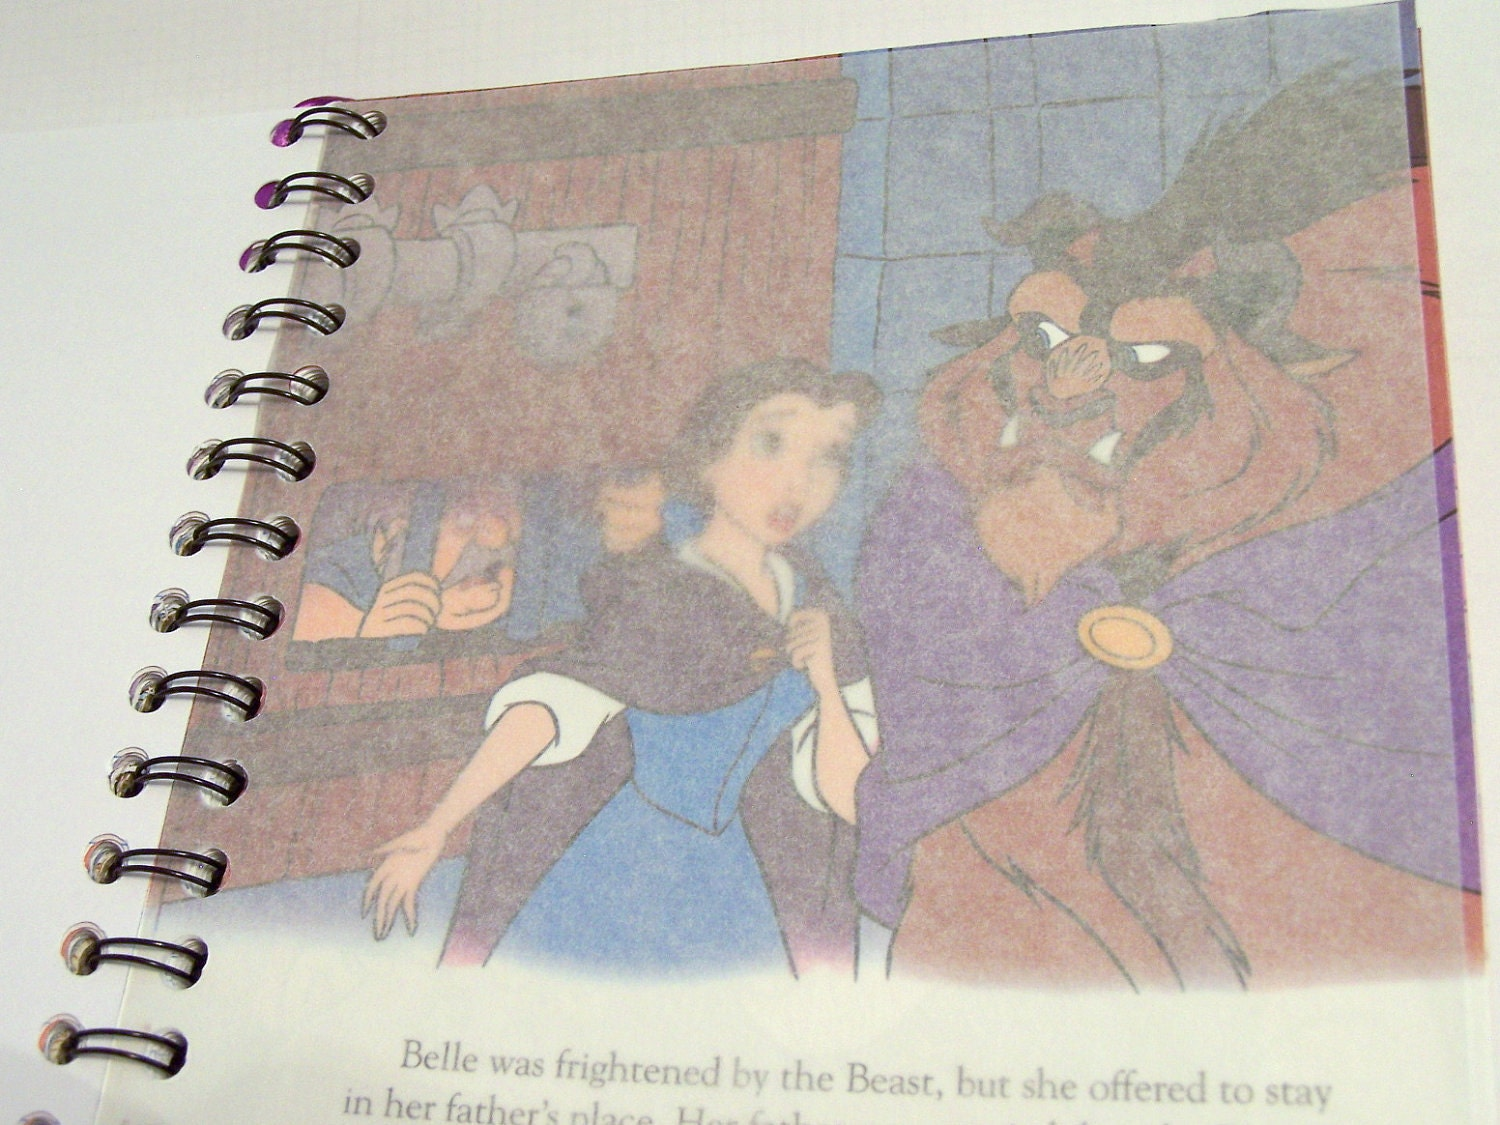 Upcycled Golden Book Notebook Upcycled Children's Notebook: Disney's Beauty and the Beast the Teapot's Tale